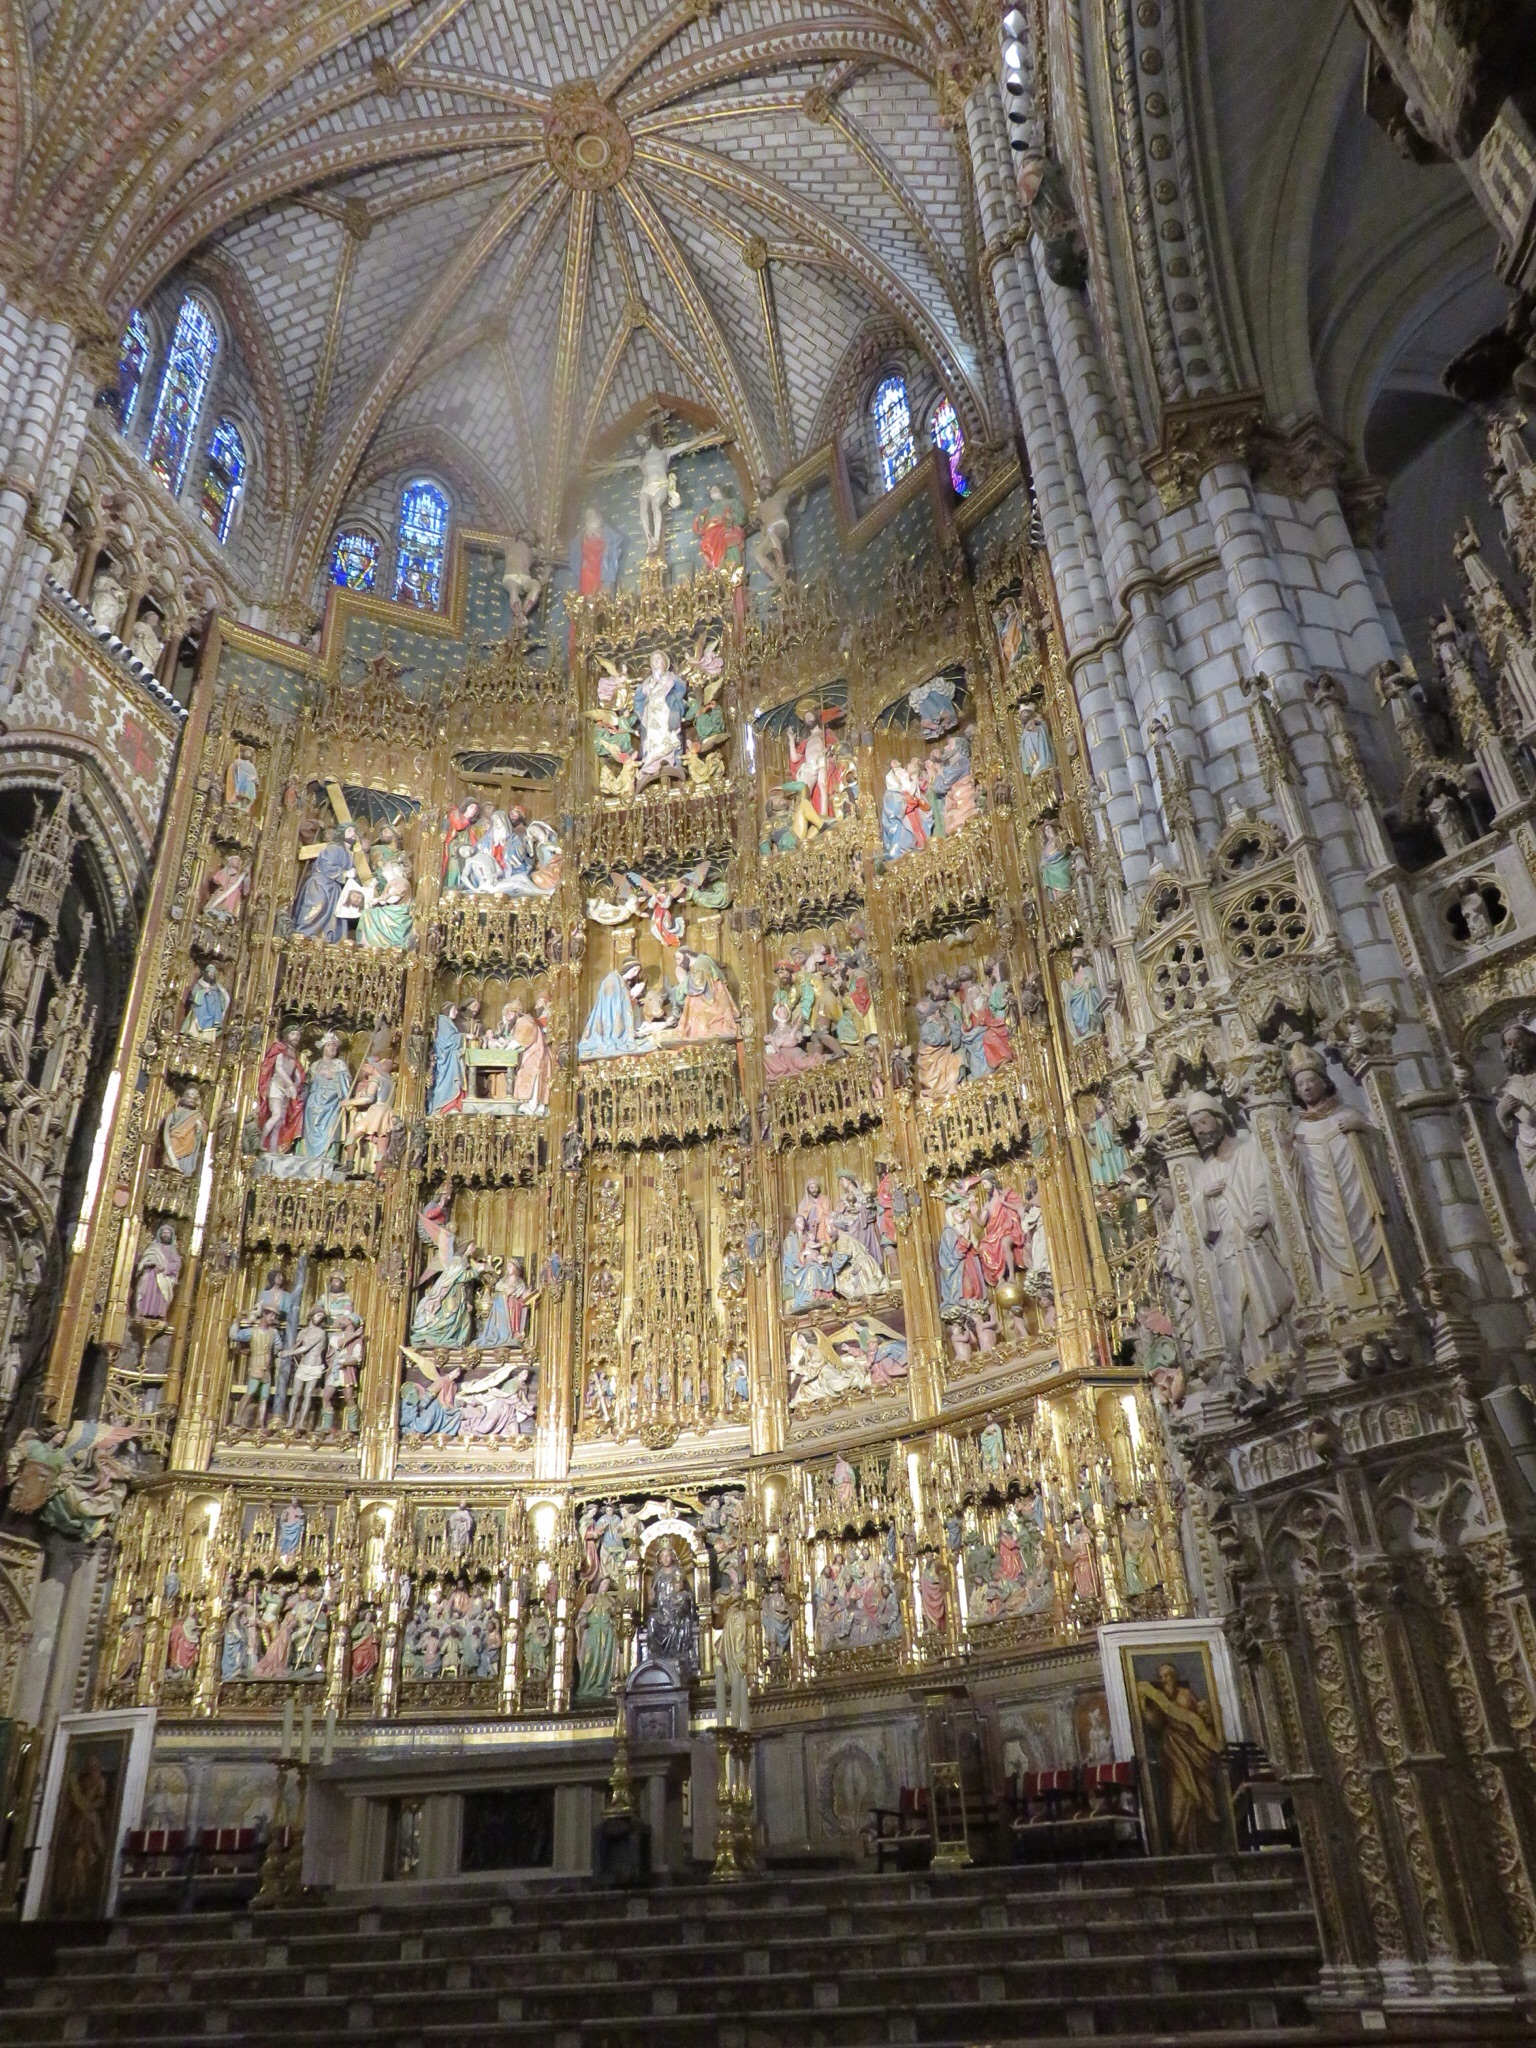 The High Altar, gold on wood depicting scenes from the life of Christ.